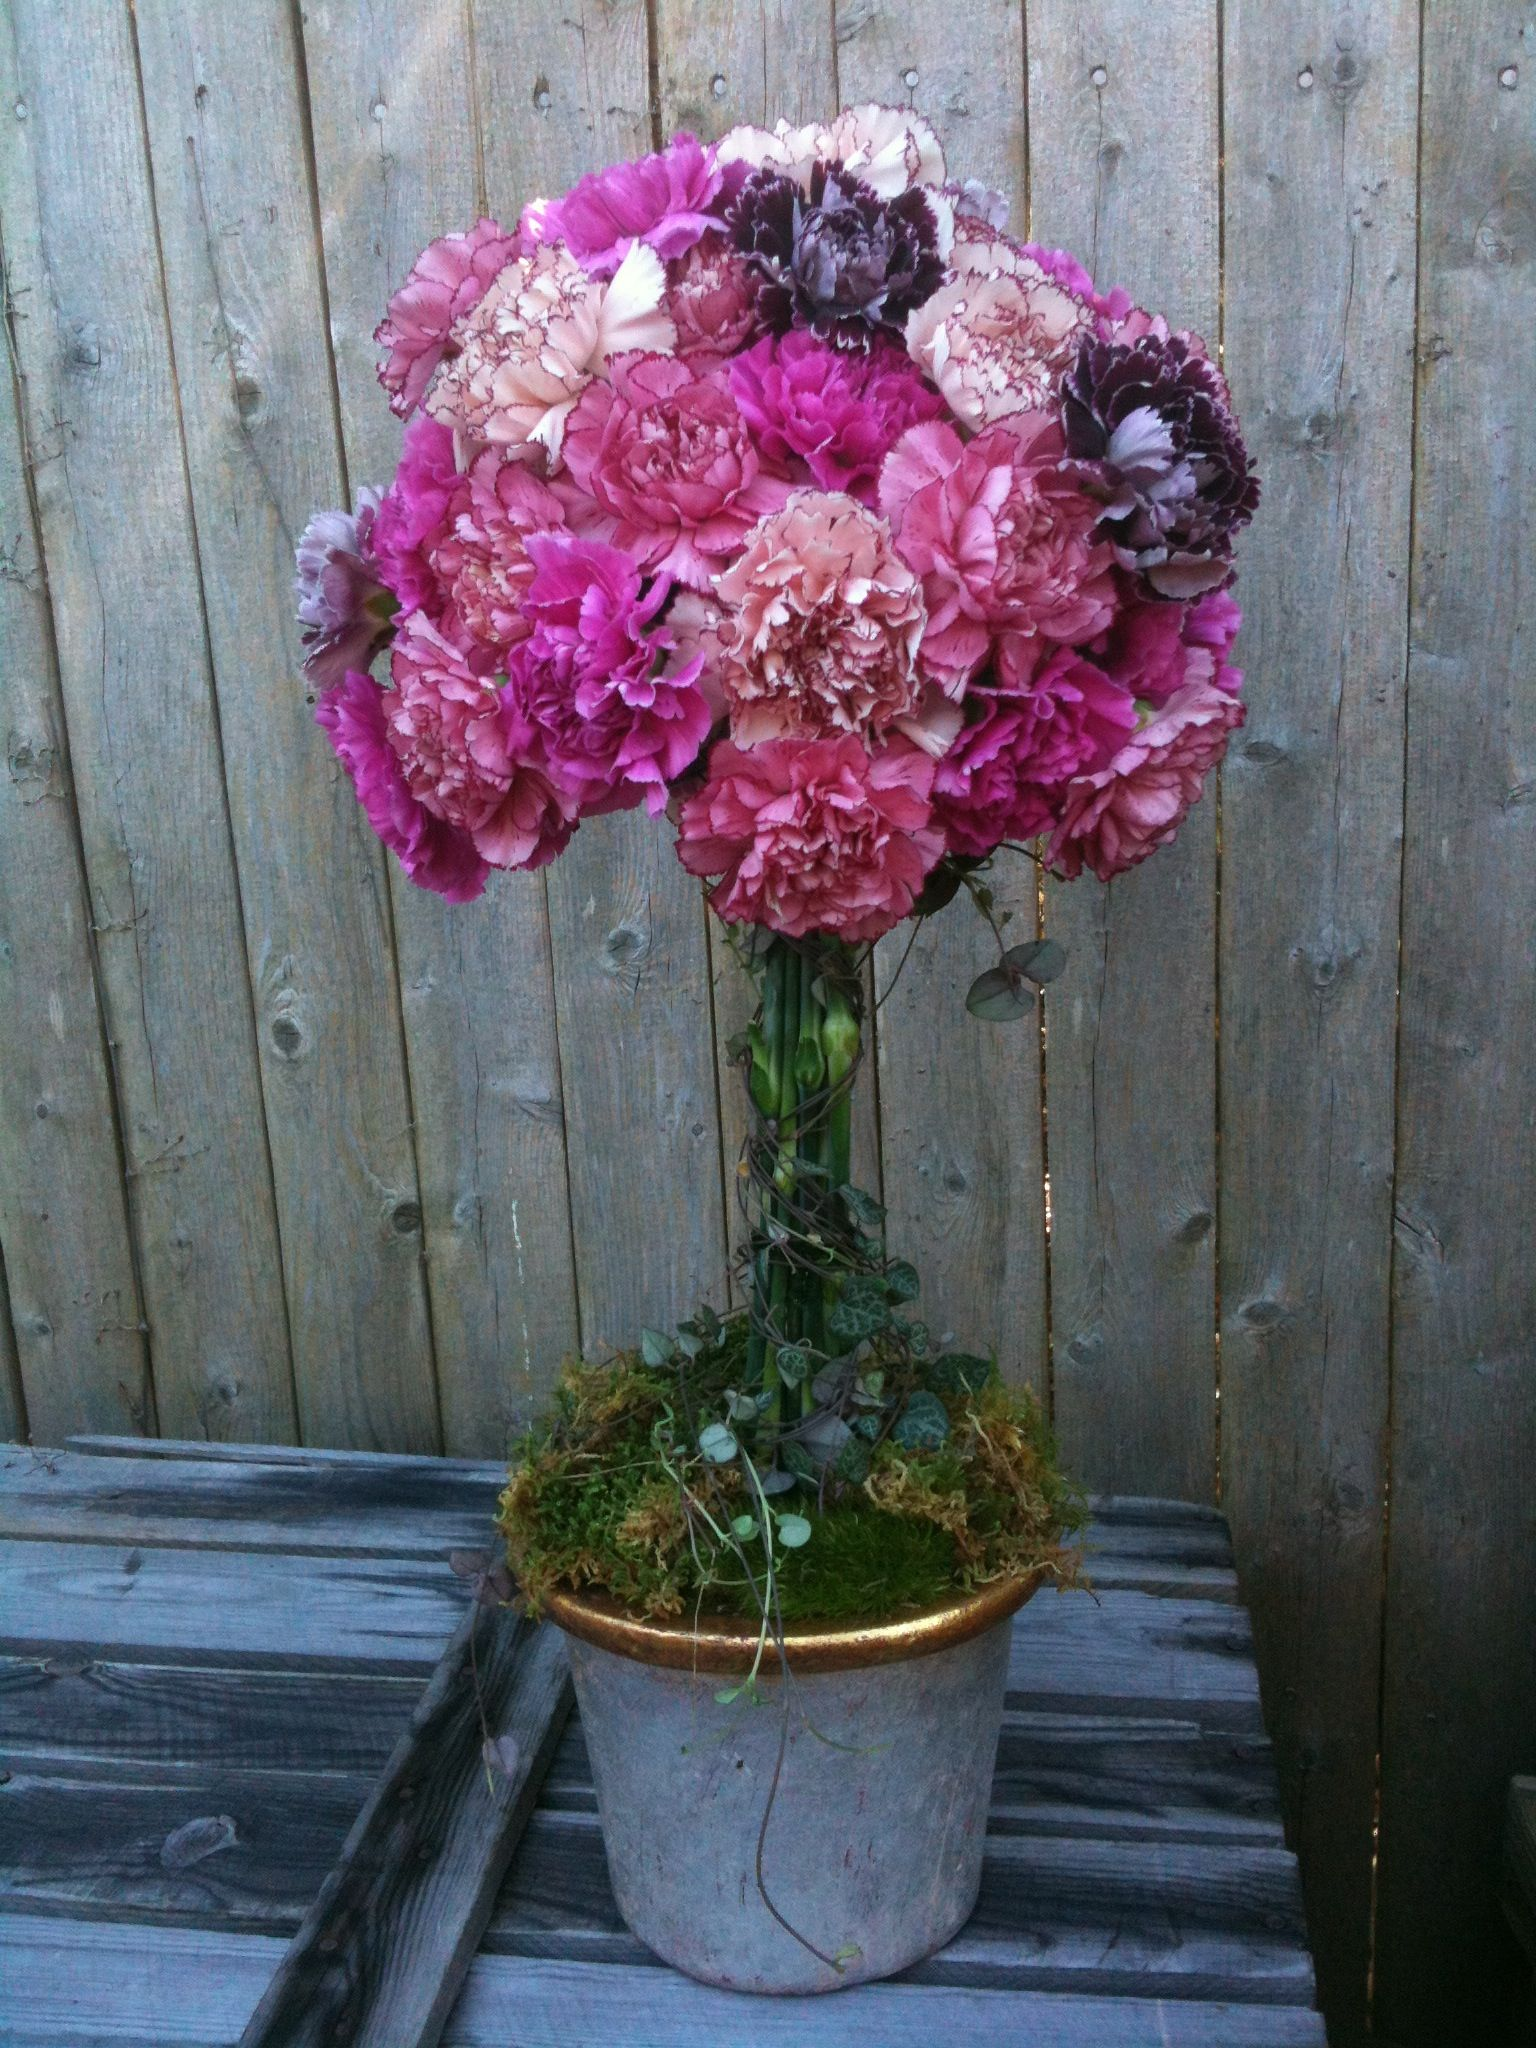 Carnations need several hours of full sunlight daily. They should be kept on the moist side, but not over watered as this may cause them to turn yellow. Any dead flowers should be removed, this will allow for the rest of the flowers to continue blooming.